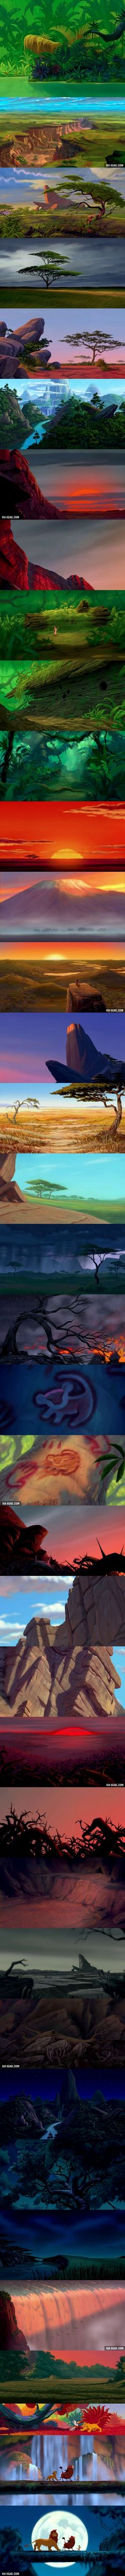 Background Art of The Lion King. I like the greenery vs. the all orangy yellowy looks.: